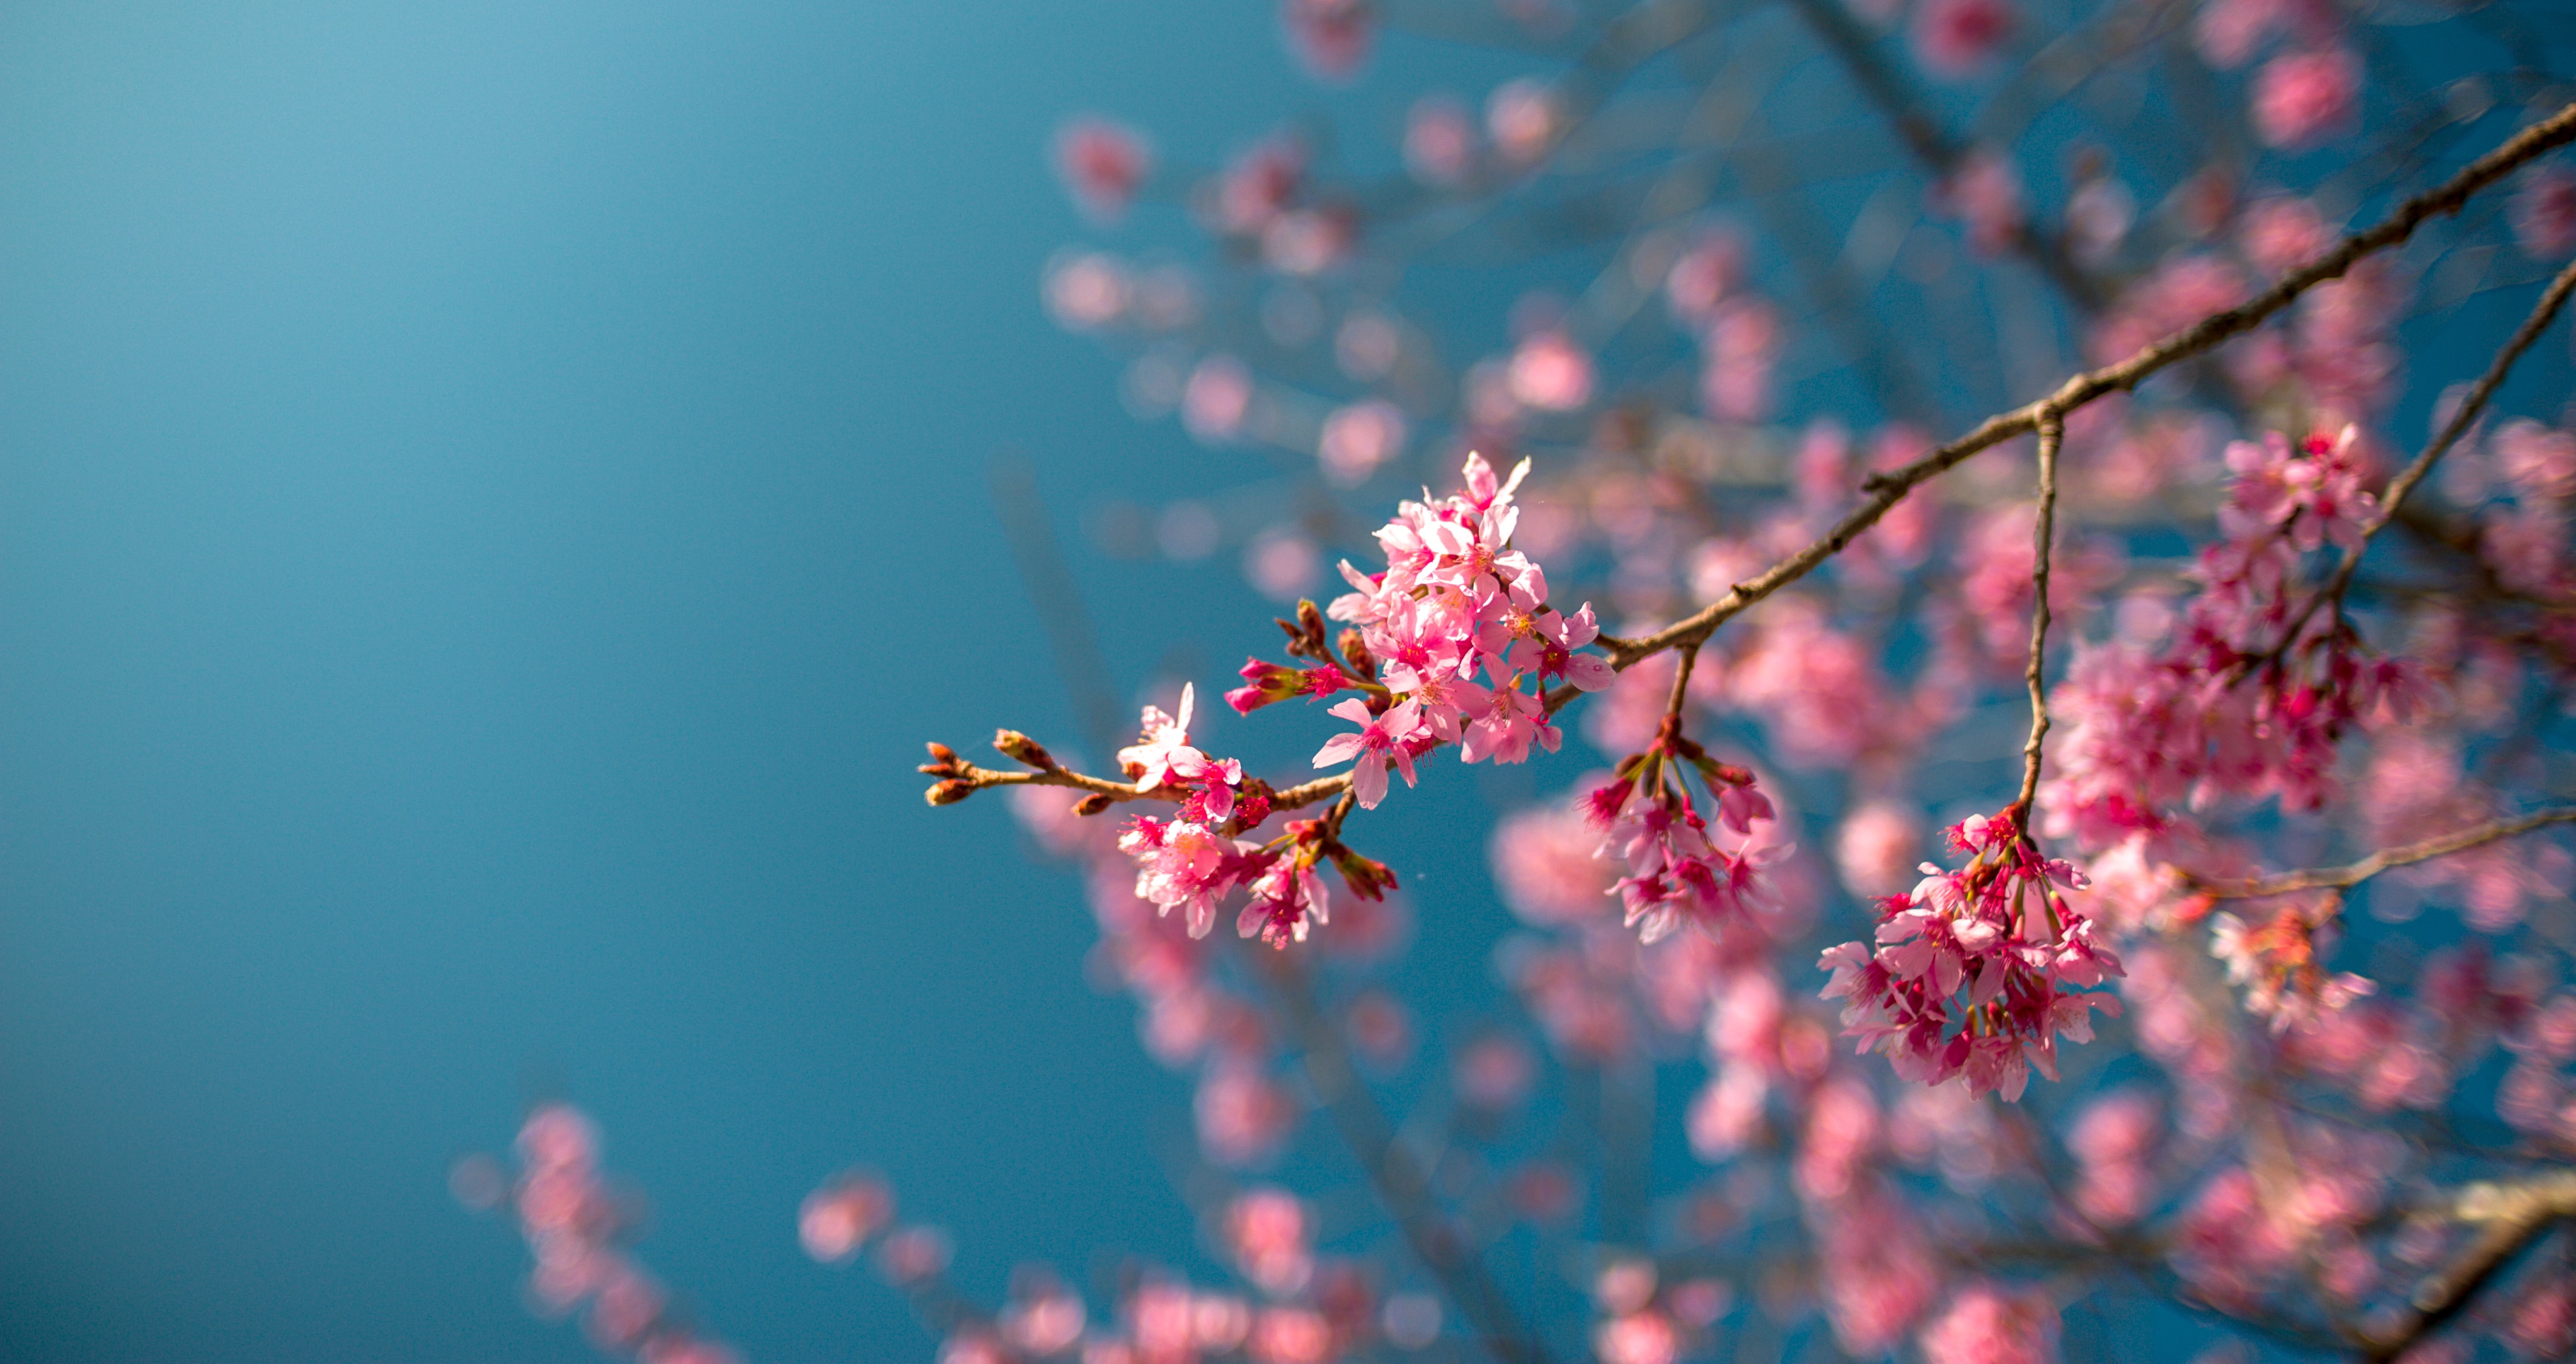 selective focus photography of pink-petaled flowers